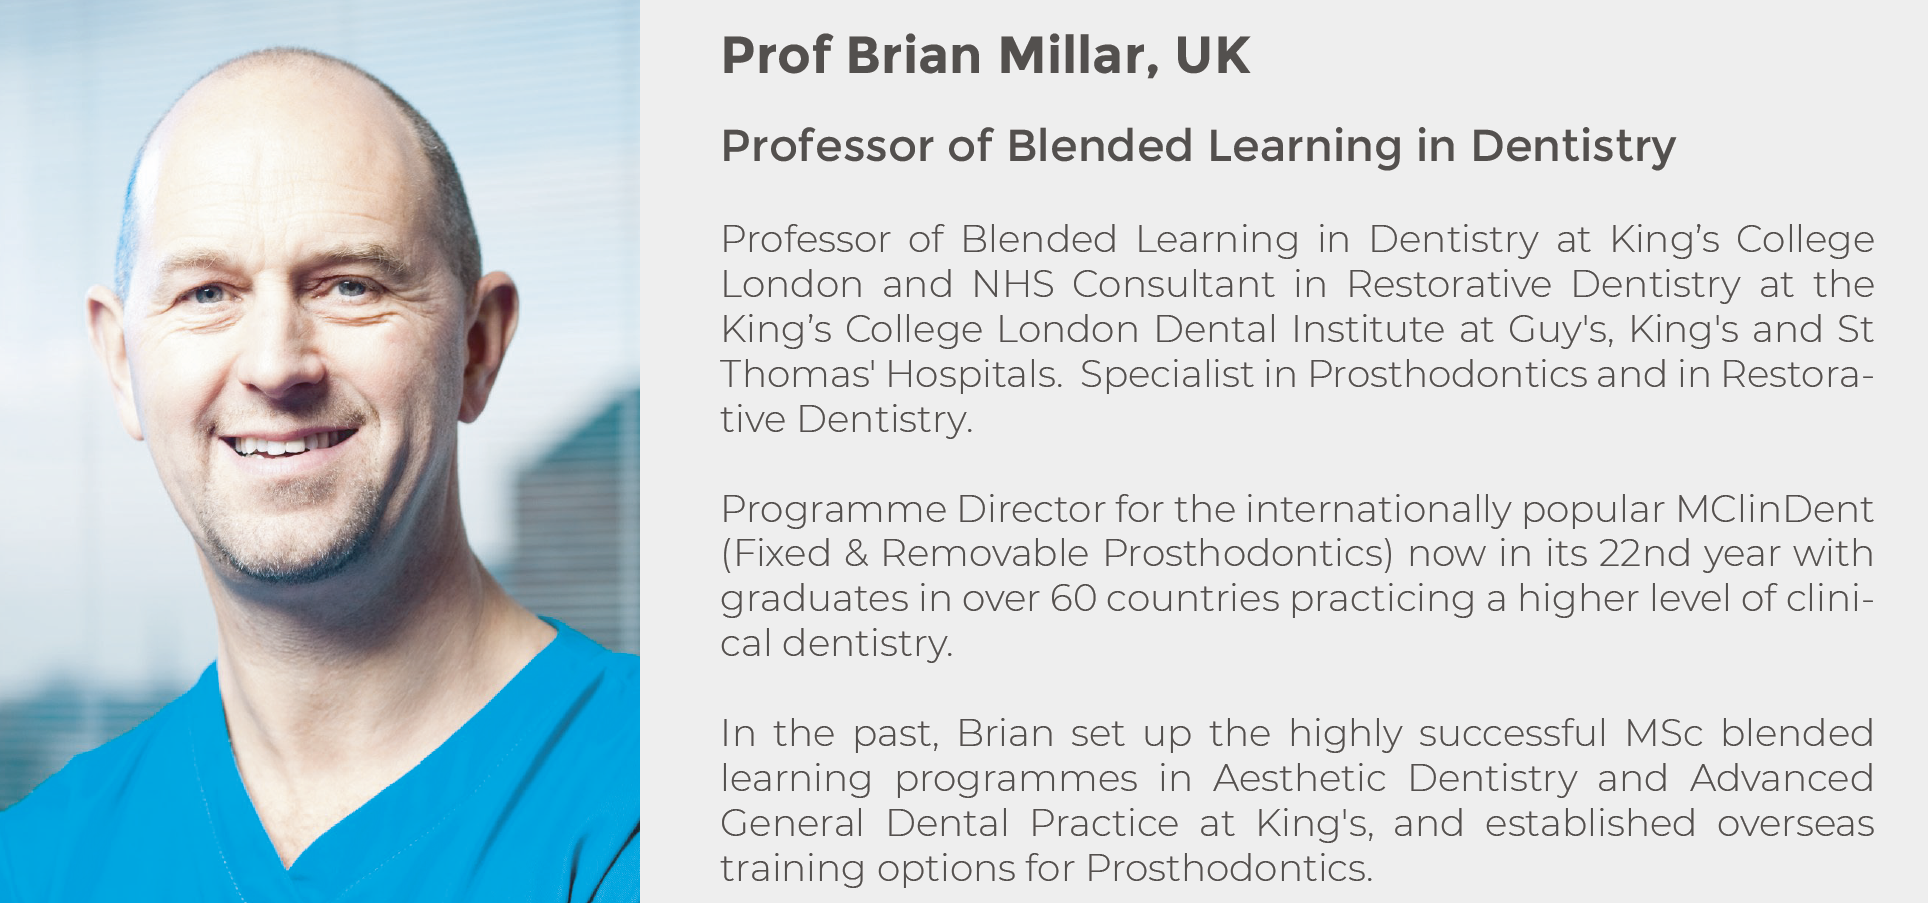 Prof Brian Millar, UK. Professor of Blended Learning in Dentistry. Professor of Blended Learning in Dentistry at King's College London and NHS Consultant in Restorative Dentistry at the King's College London Dental Institute at Guy's, King's and St Thomas' Hospitals.  Specialist in Prosthodontics and in Restorative Dentistry. Programme Director for the internationally popular MClinDent (Fixed & Removable Prosthodontics) now in its 22nd year with graduates in over 60 countries practicing a higher level of clinical dentistry.